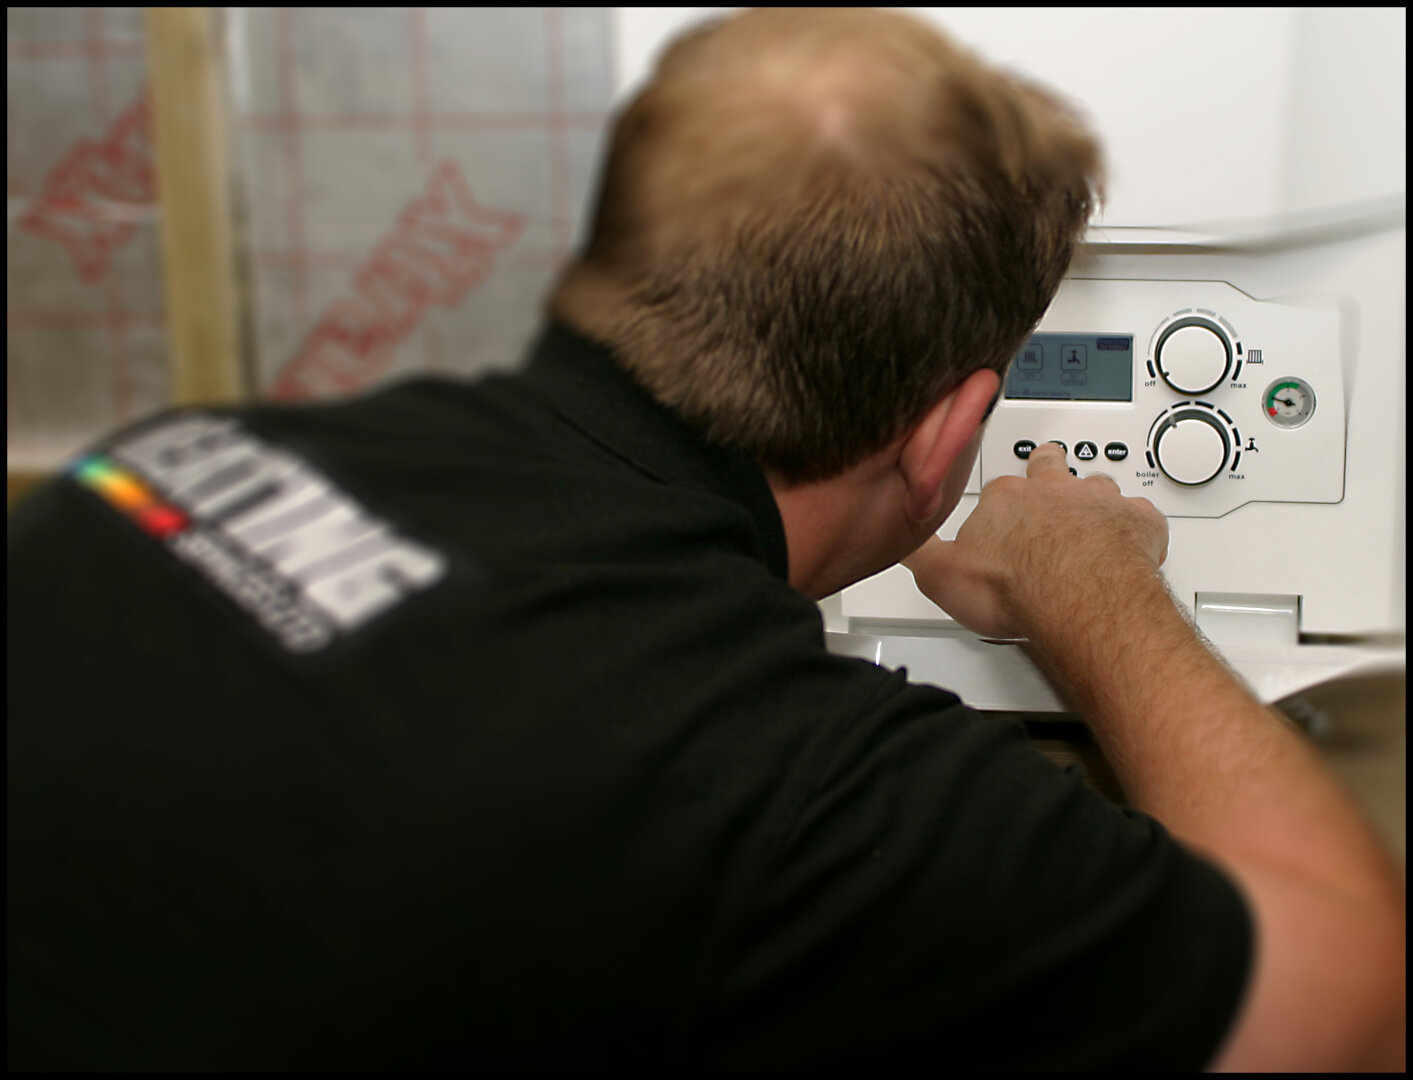 Plumbers Boiler Installation Service and Repairs and Bathroom Design and Installation by Heating Services Ltd in Biggin Hill (5)